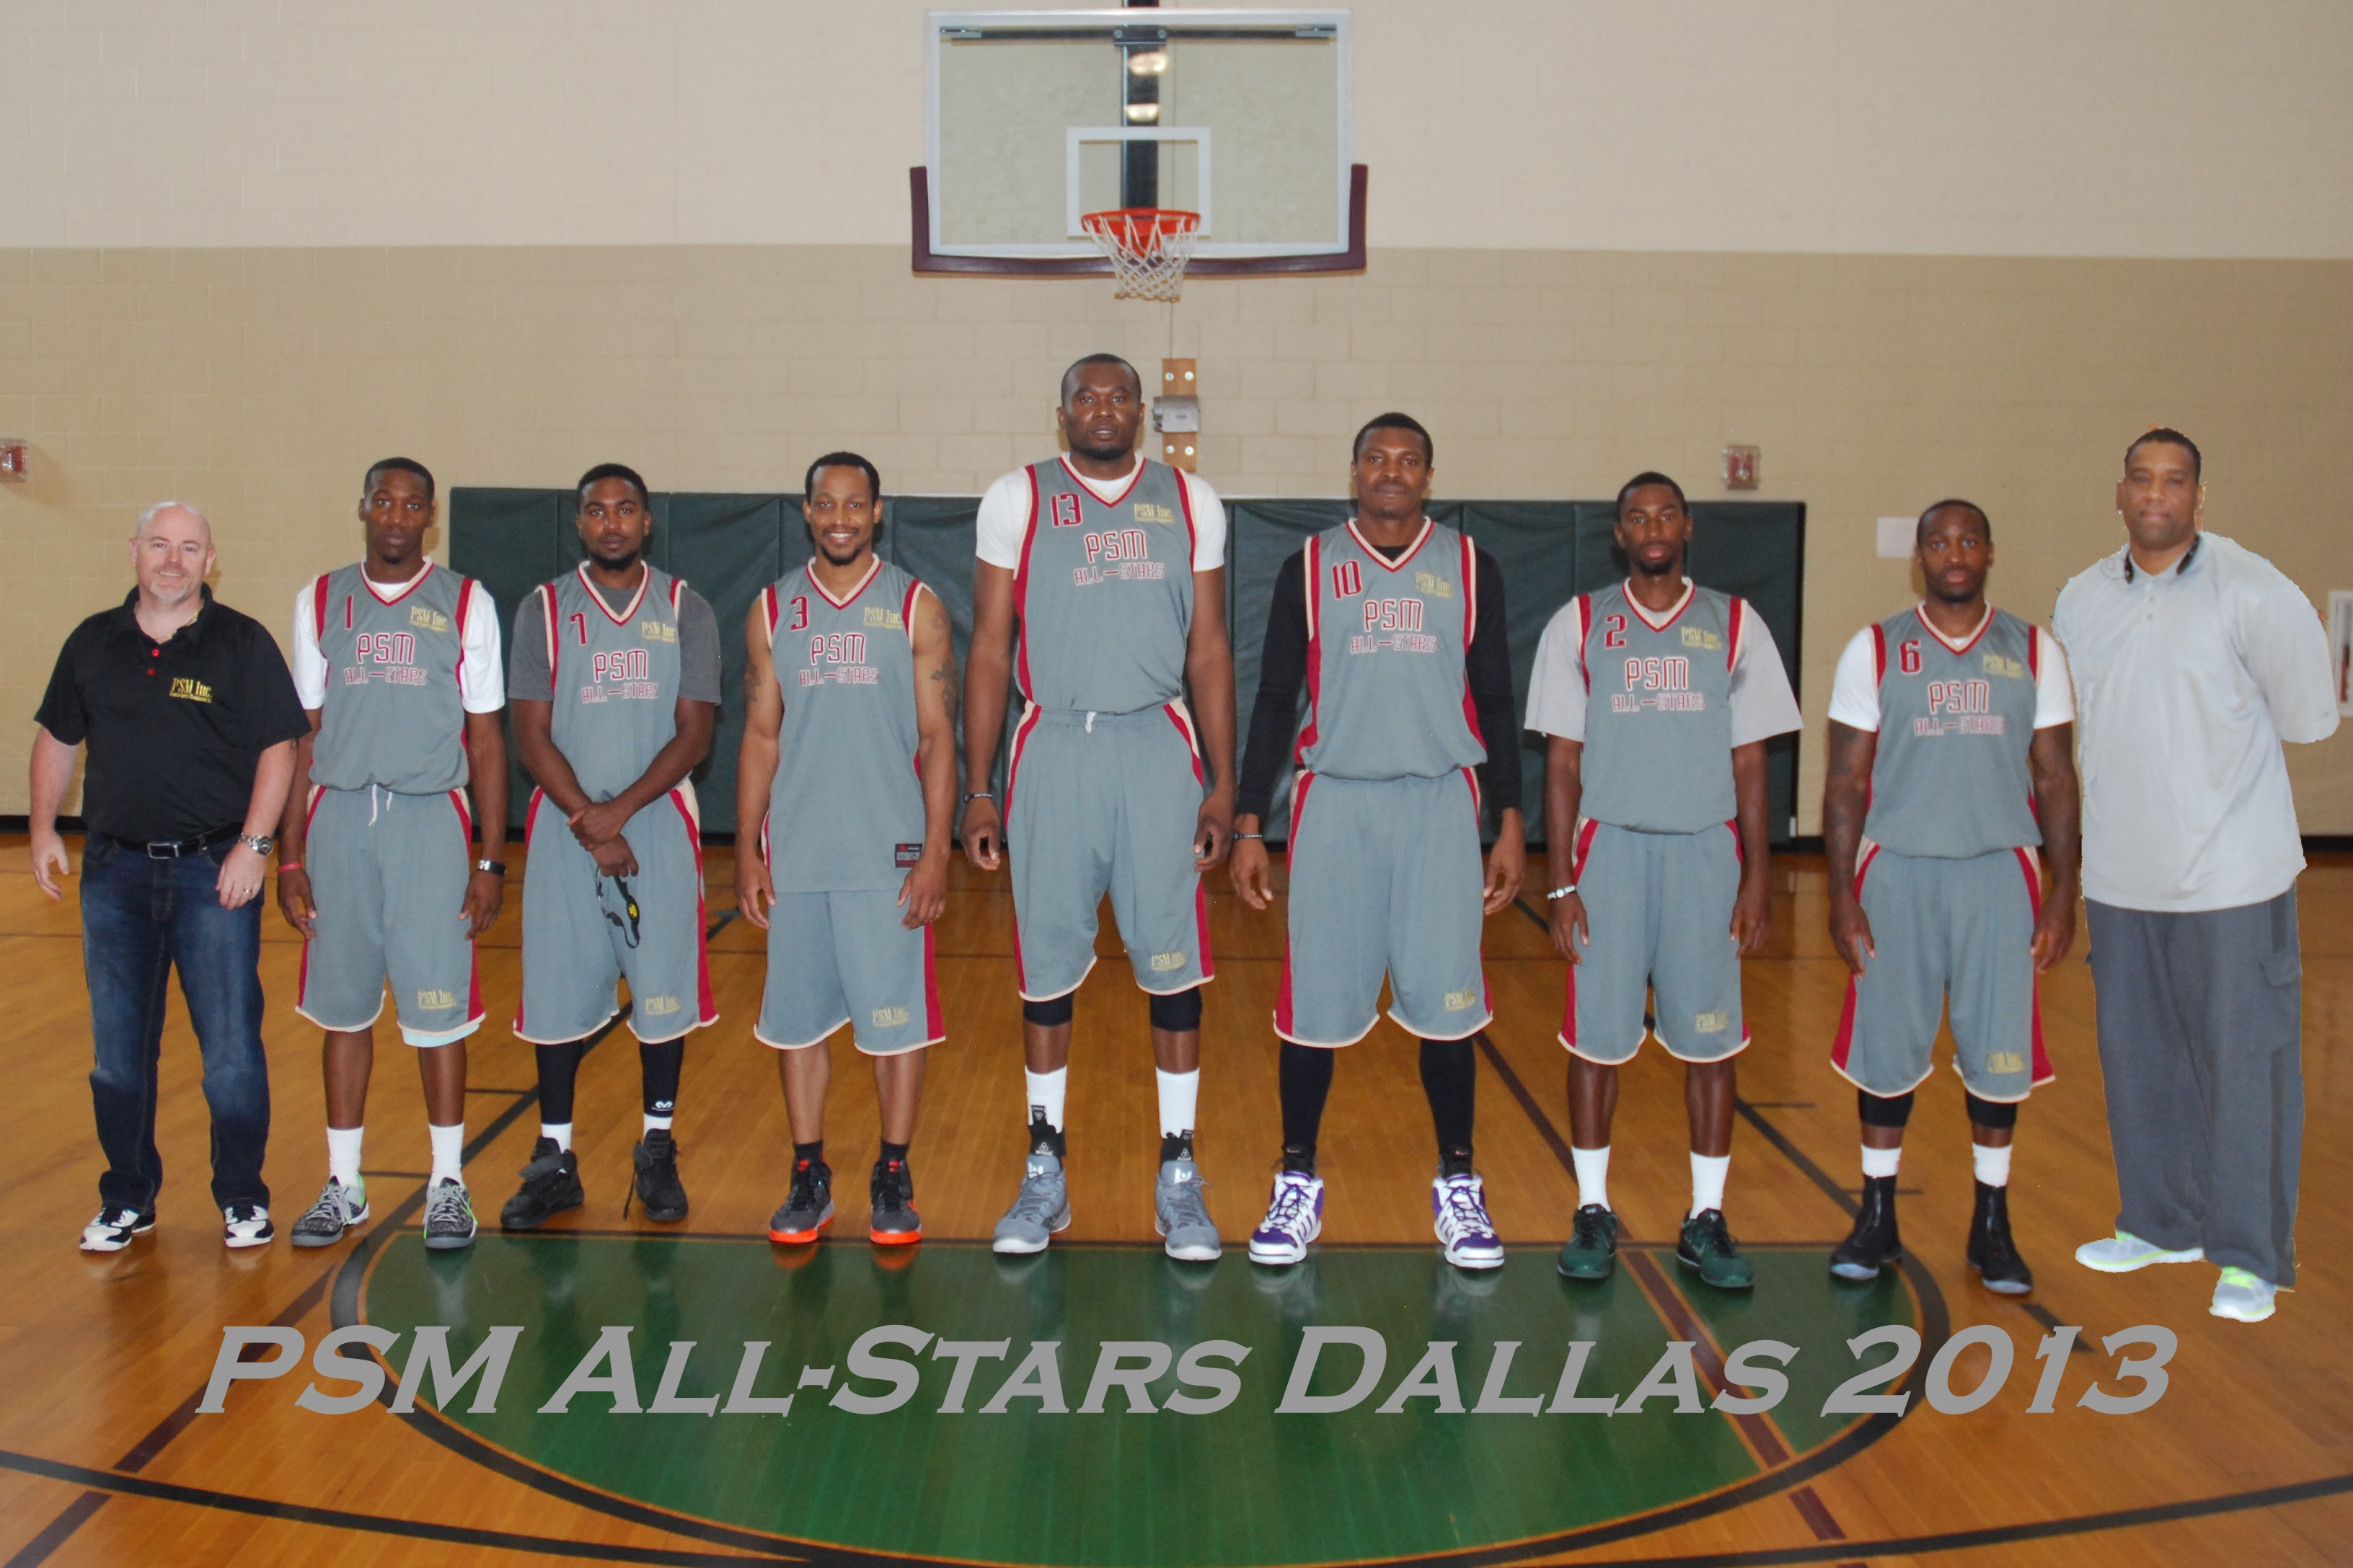 PSM All-Stars Dallas 2013